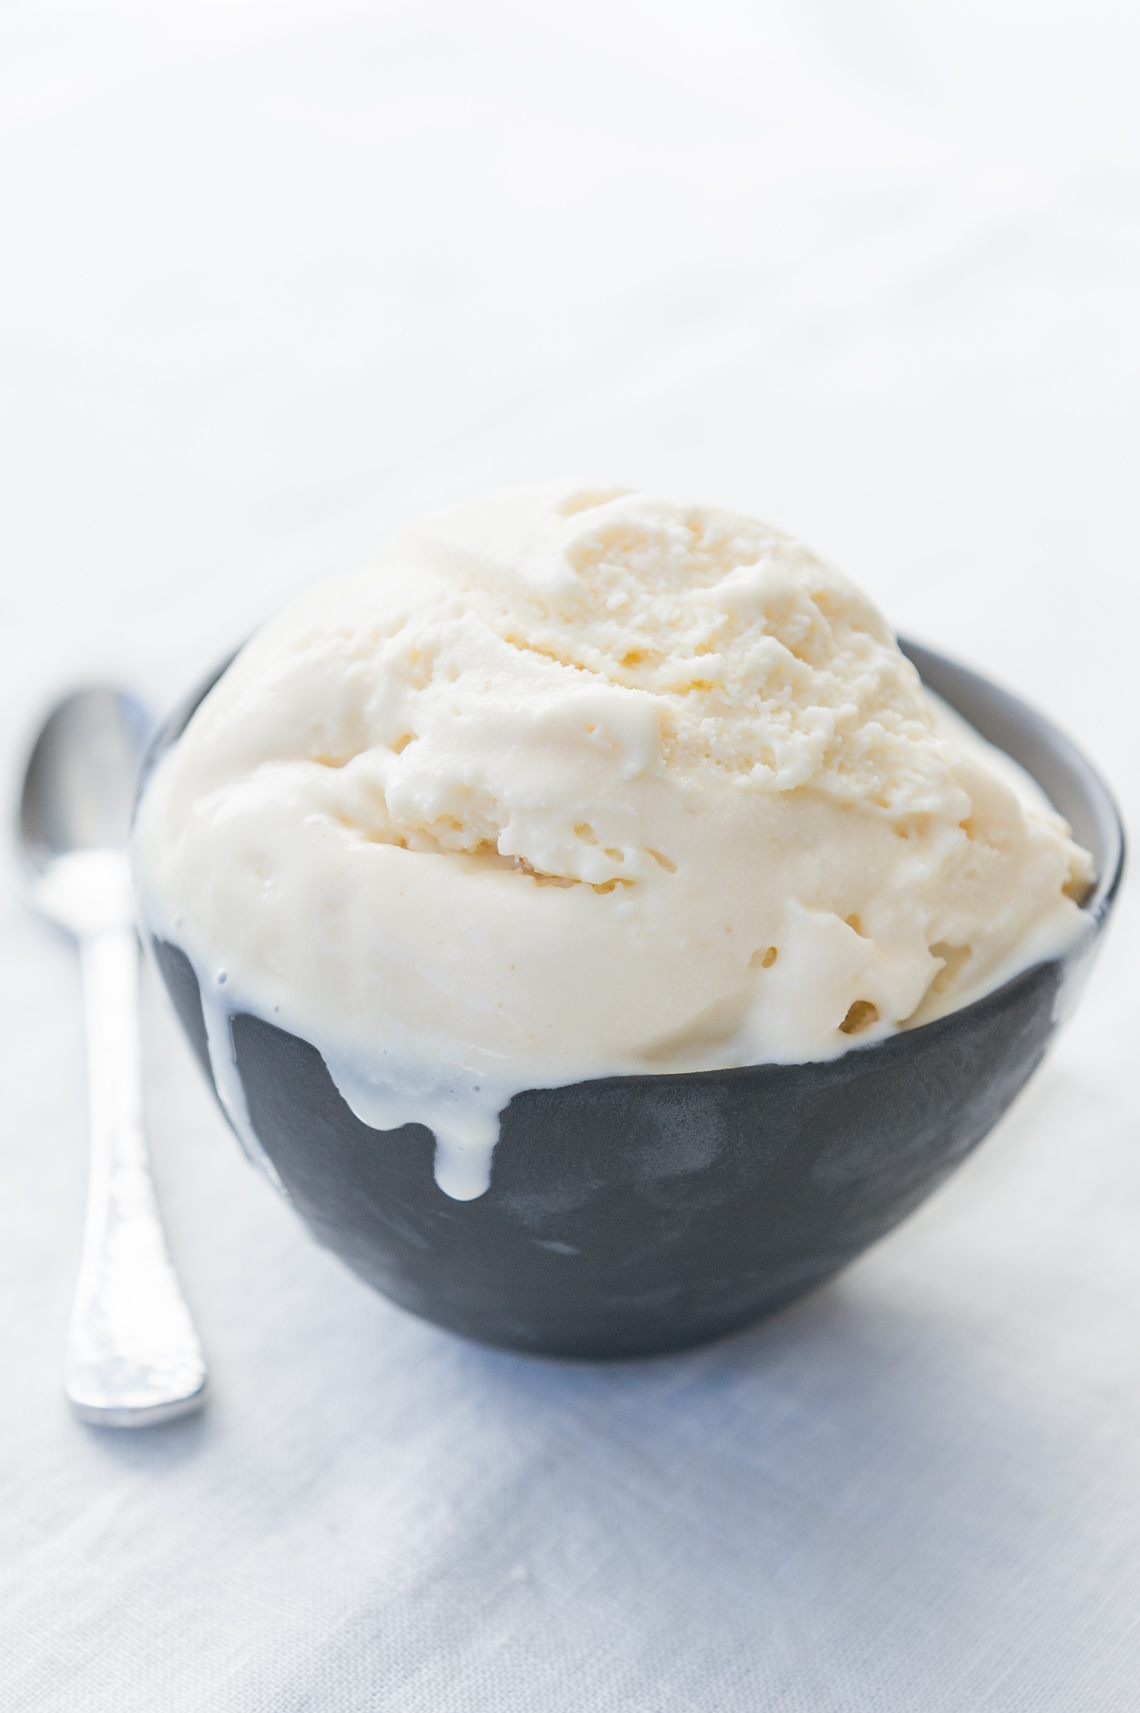 NYC + Chicago Food Photographer - Vanilla Ice Cream Bowl